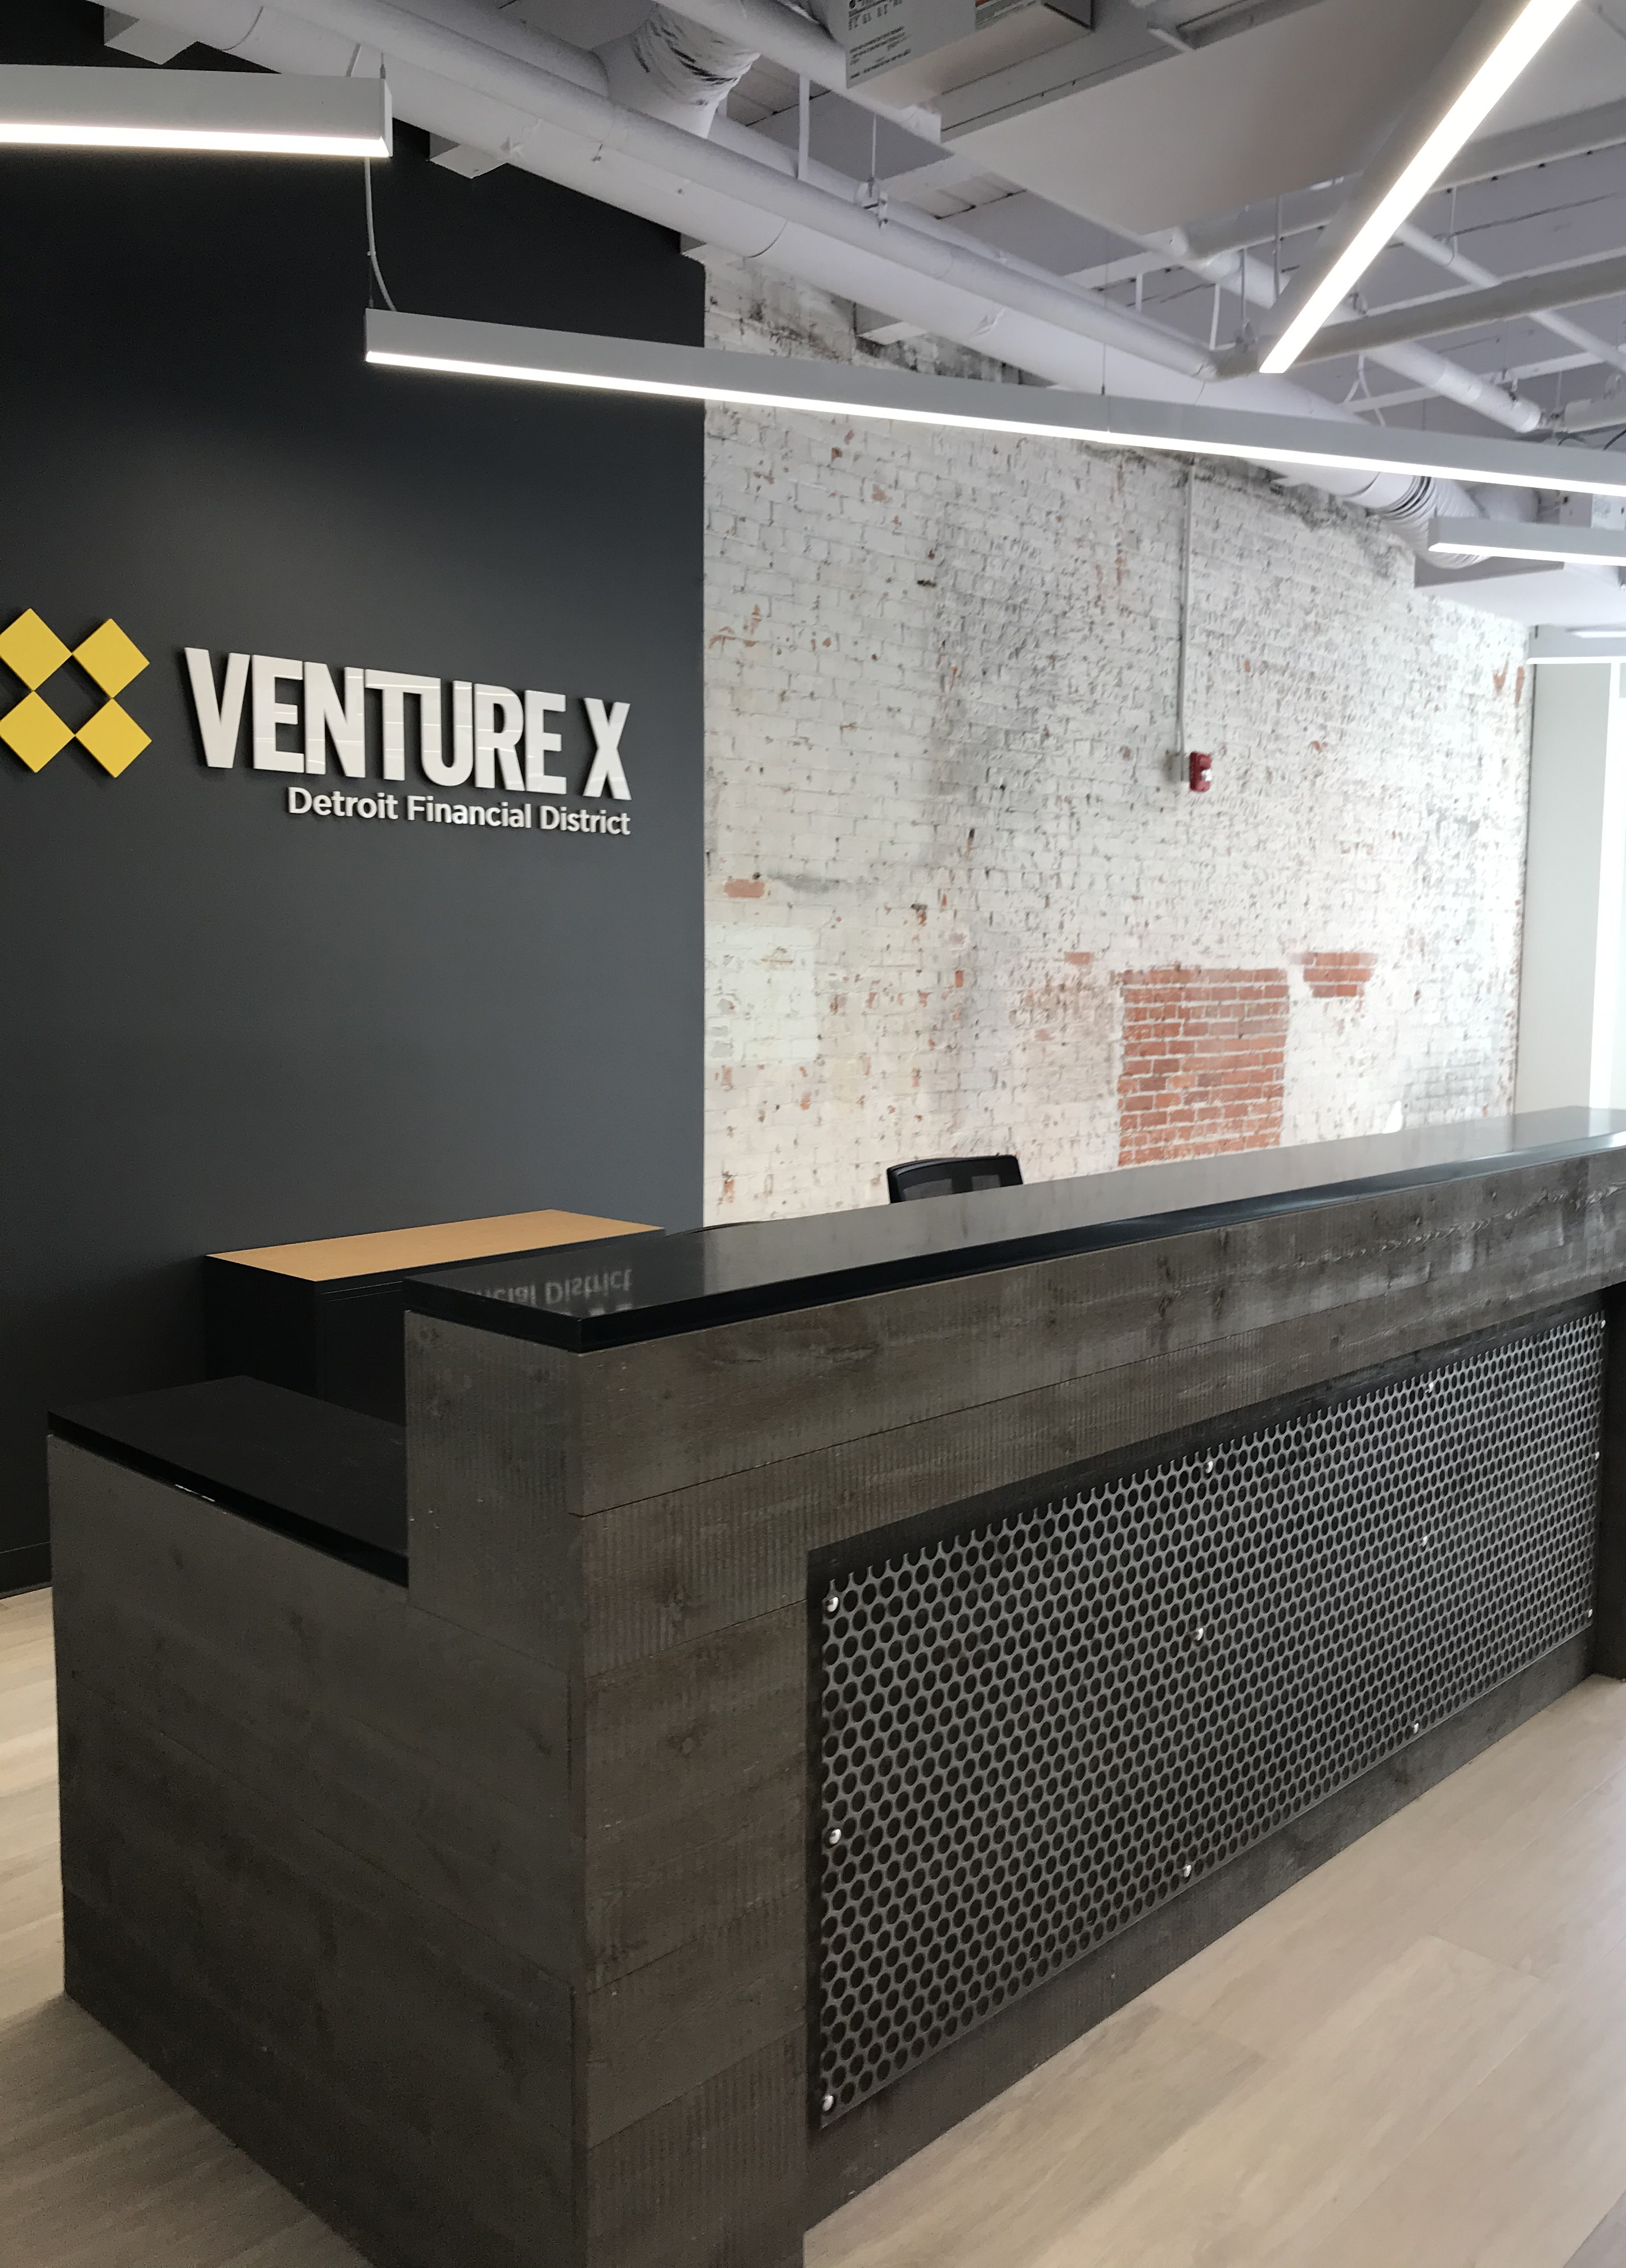 CBRE Has Been Retained To Lease 22,000 SF Co-Working Facility for Venture X at  220 W. Congress in Downtown Detroit